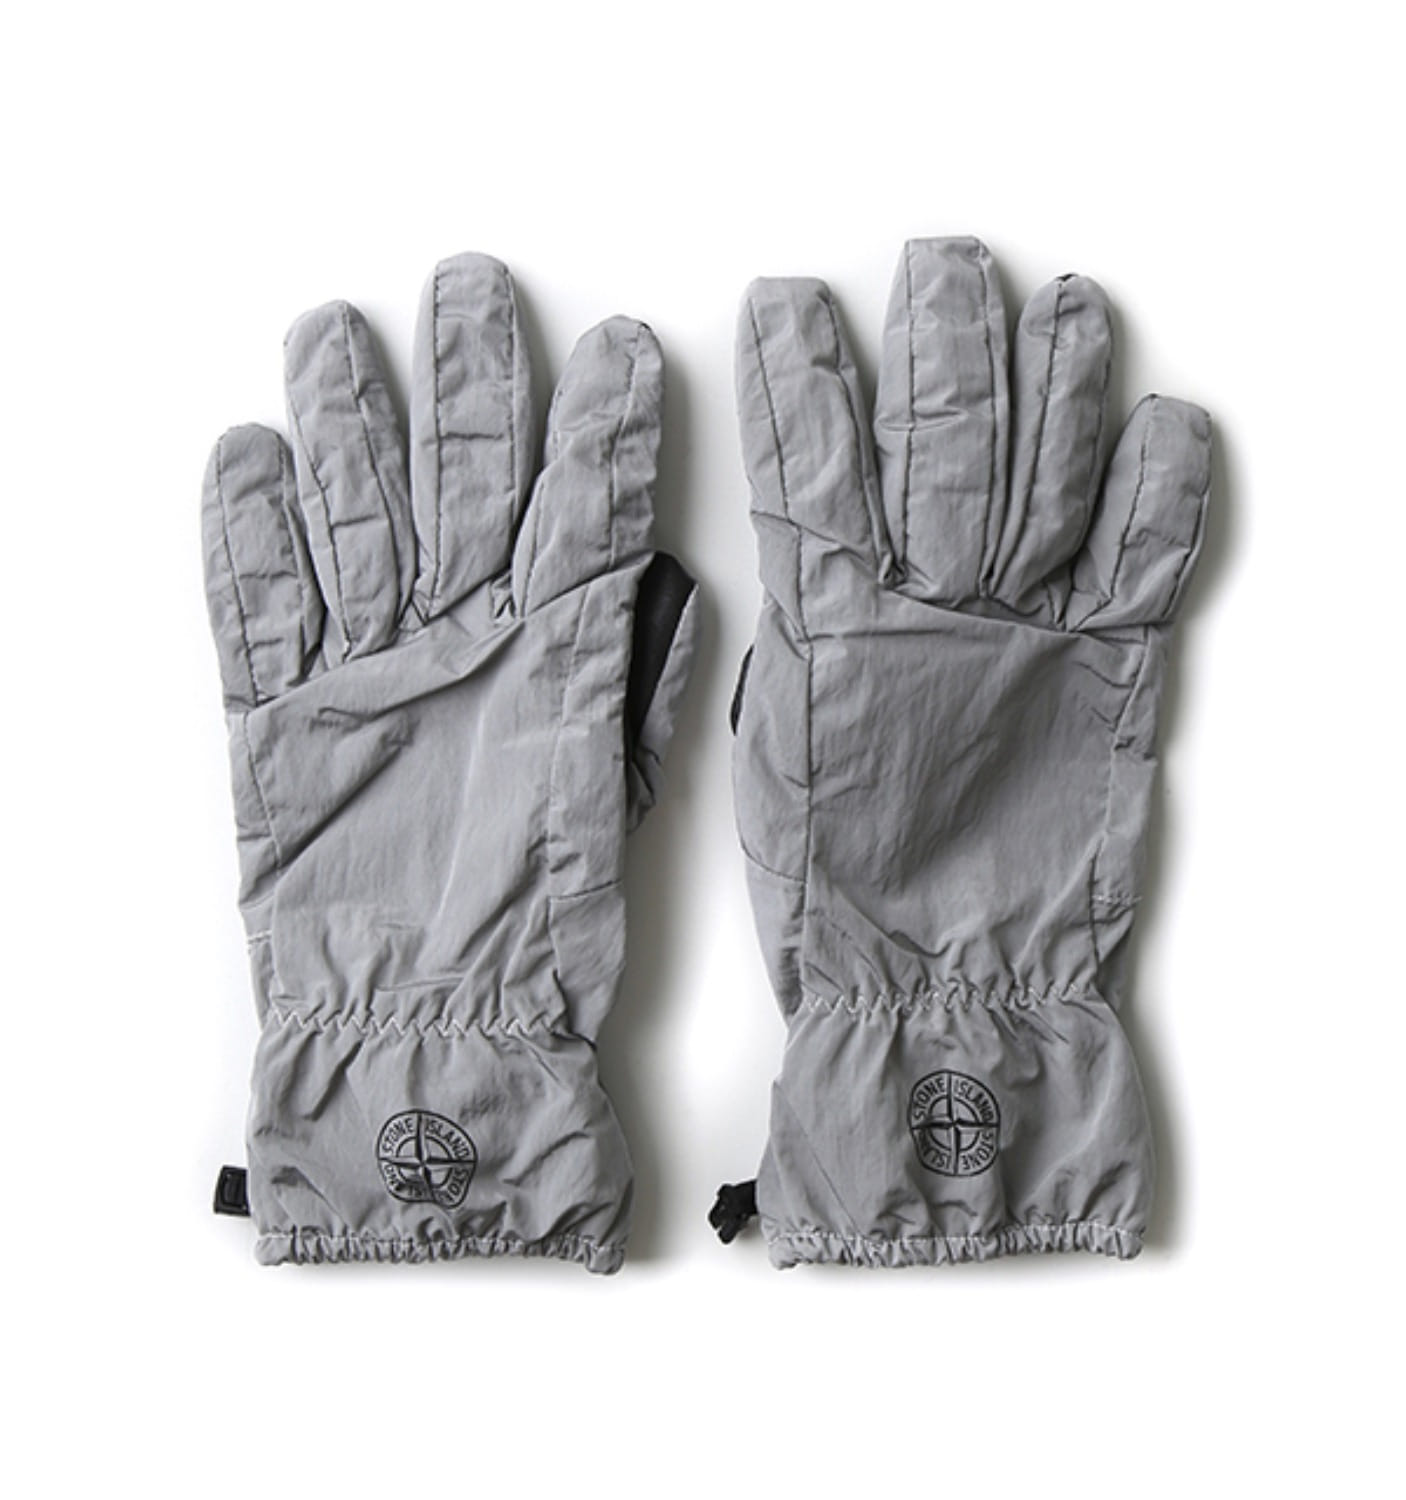 NYLON METAL GLOVES - 671592069 SILVER